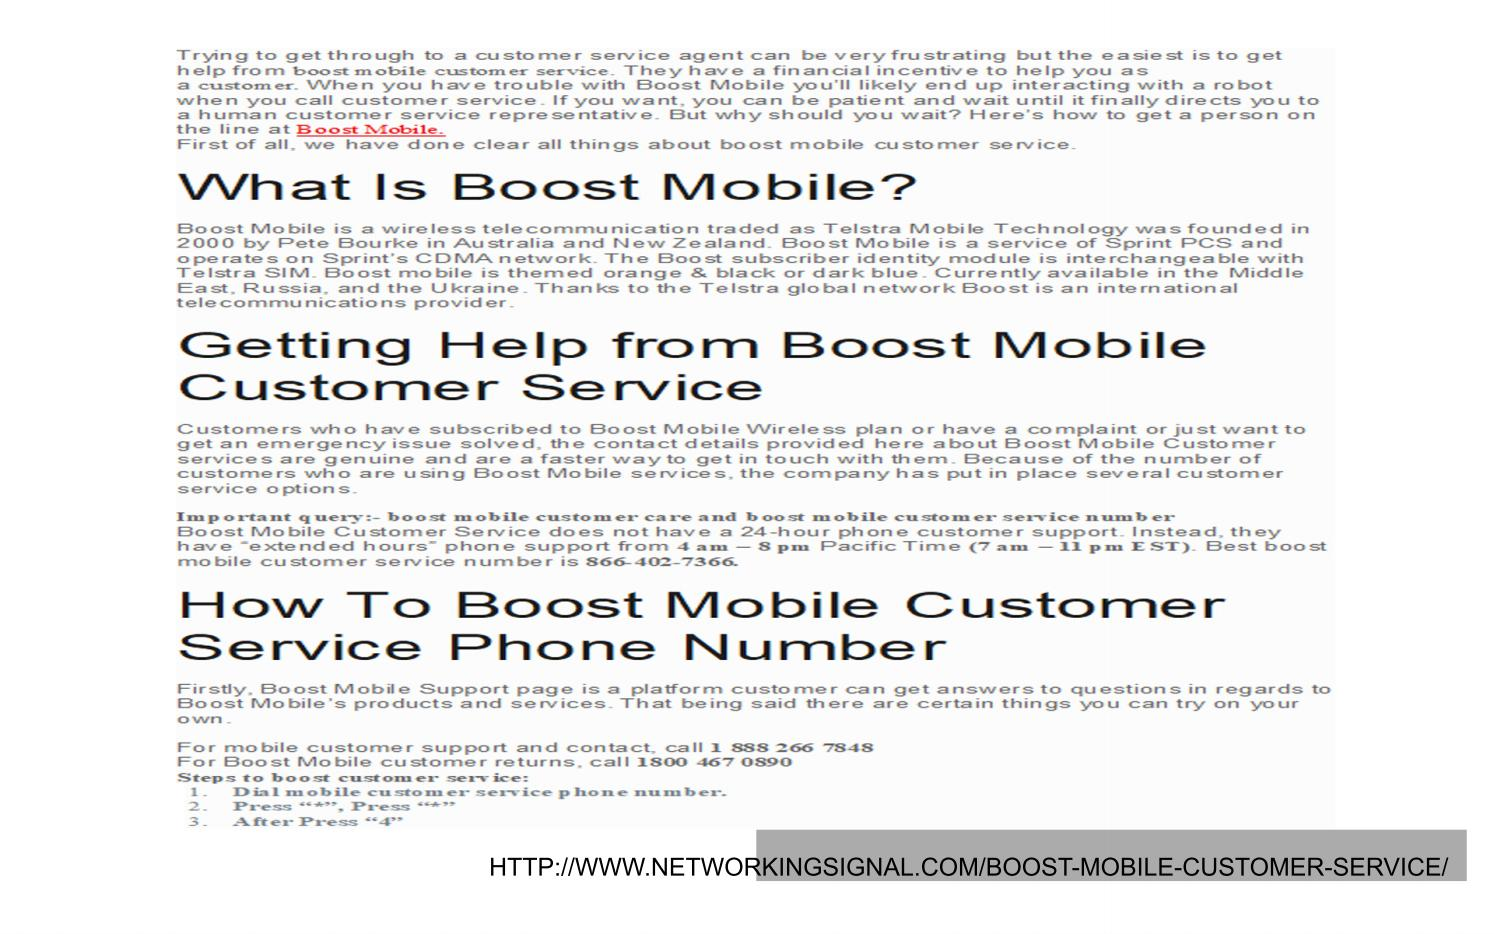 Boost mobile customer service by networkingsignal - issuu